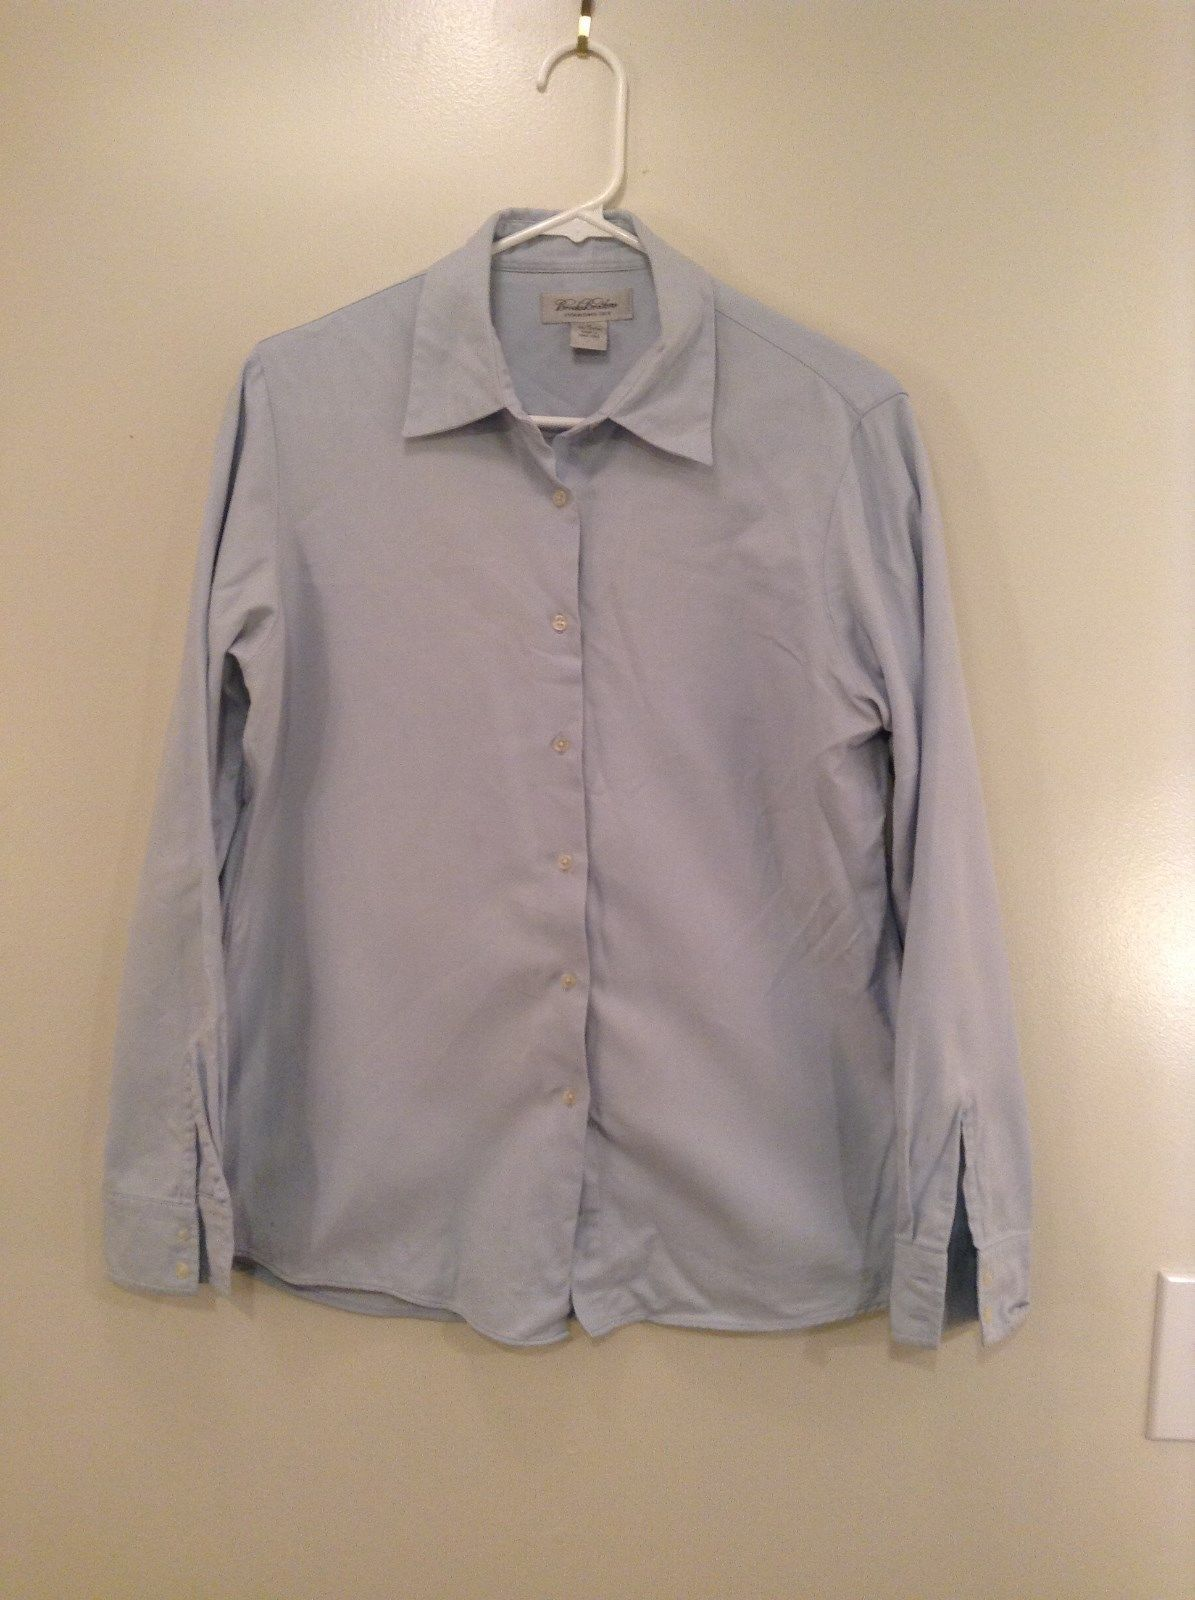 Blue Long Sleeve Button Up 100 Percent Cotton Brooks Brothers Shirt Size Medium